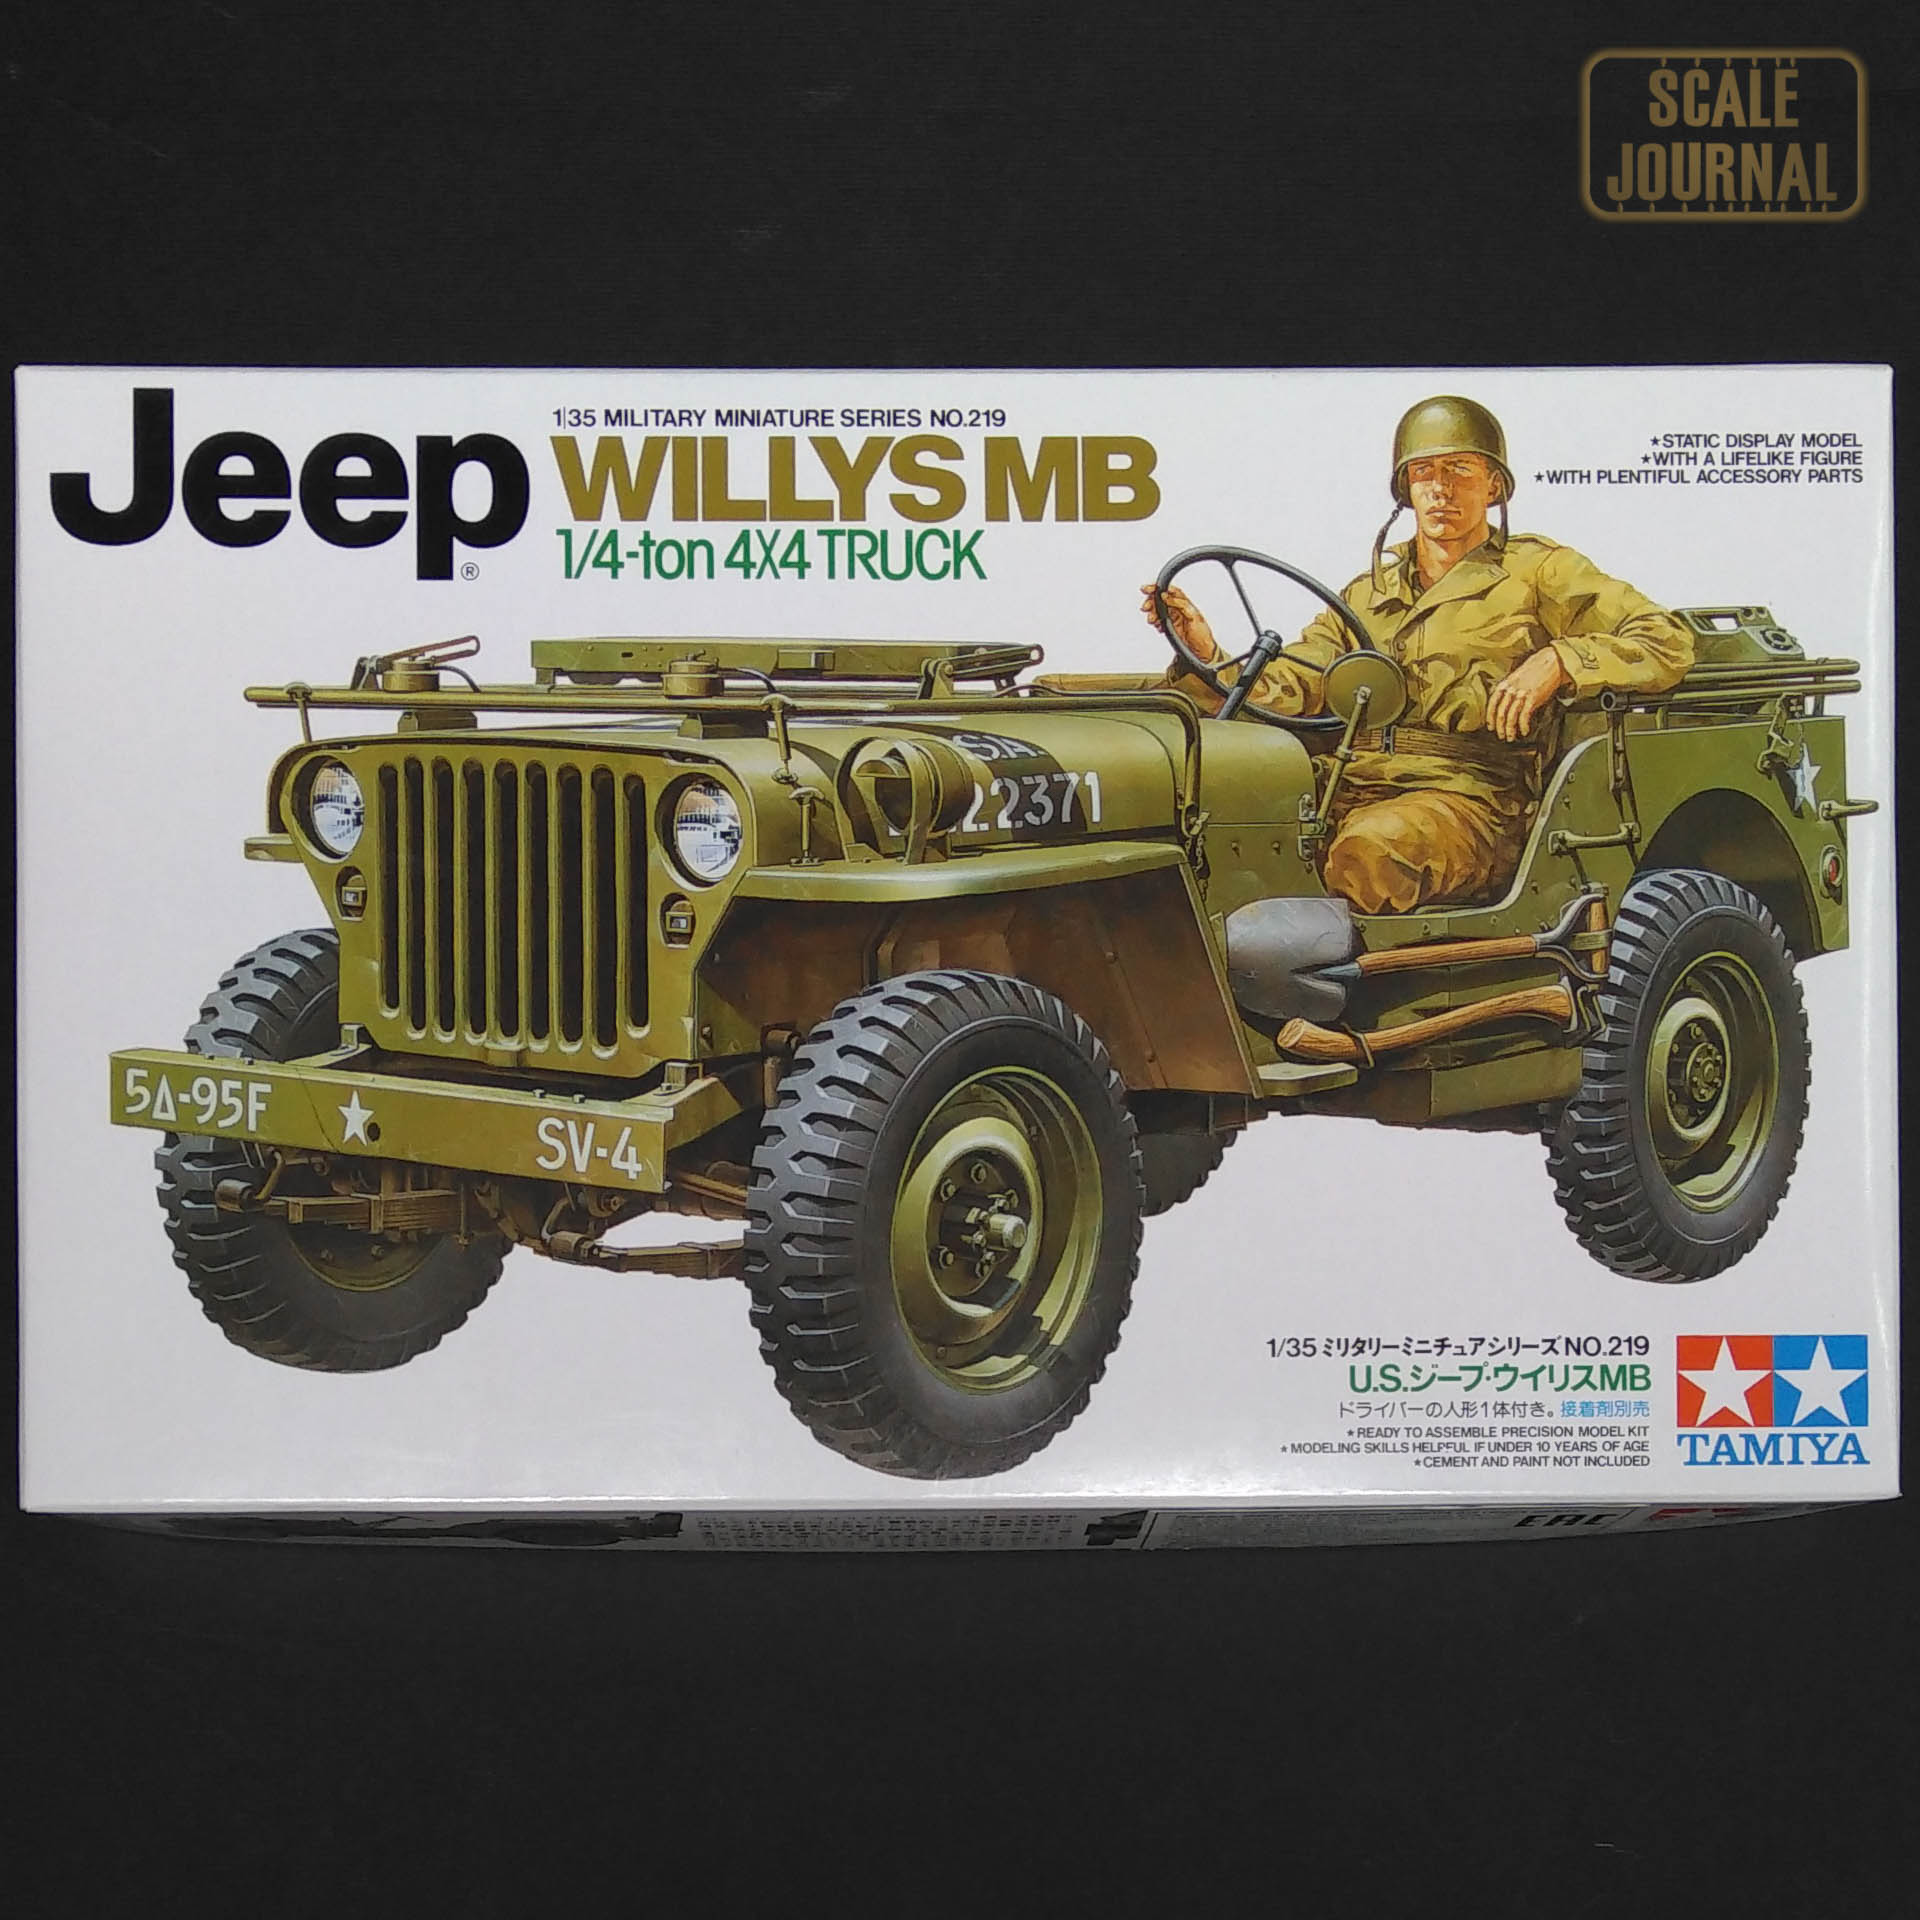 1/35 Tamiya Jeep Willys MB 1/4ton 4X4 Truck 35219